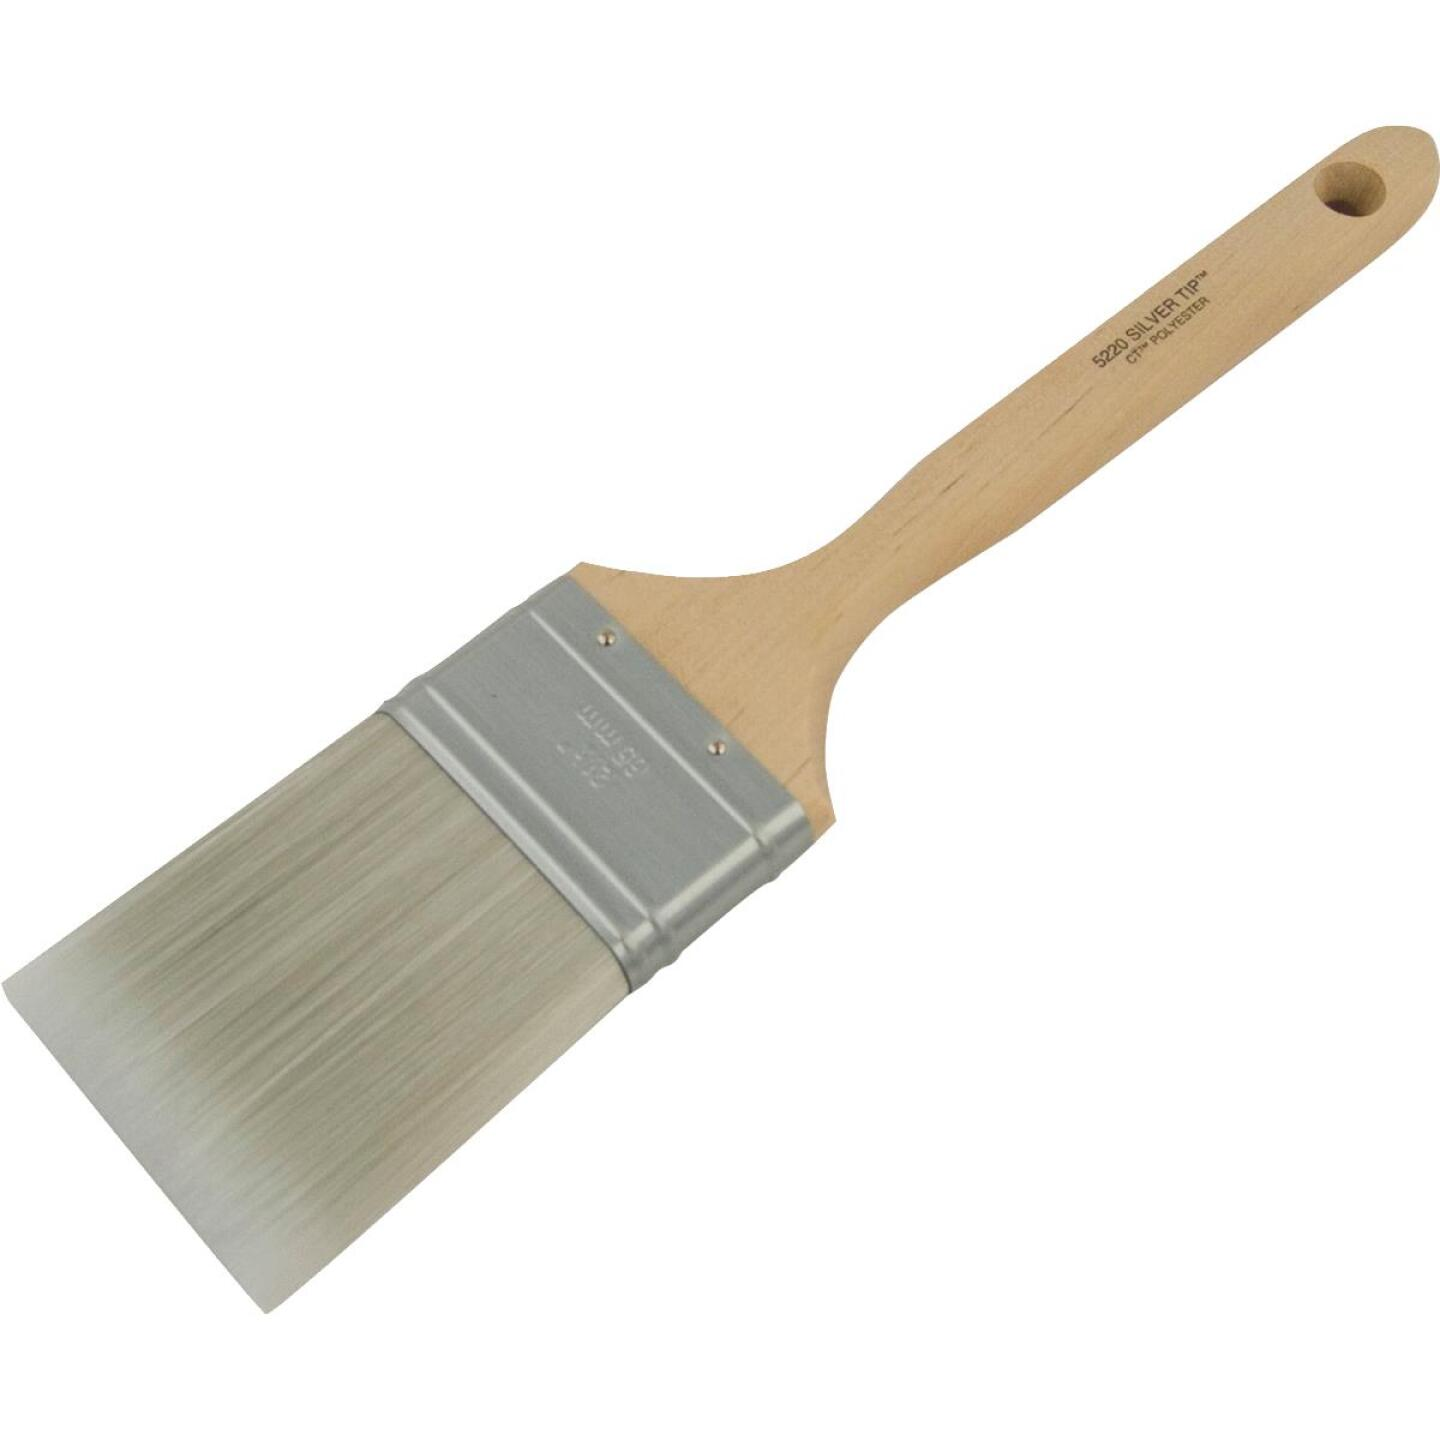 Wooster SILVER TIP 2-1/2 In. Chisel Trim Flat Sash Paint Brush Image 2